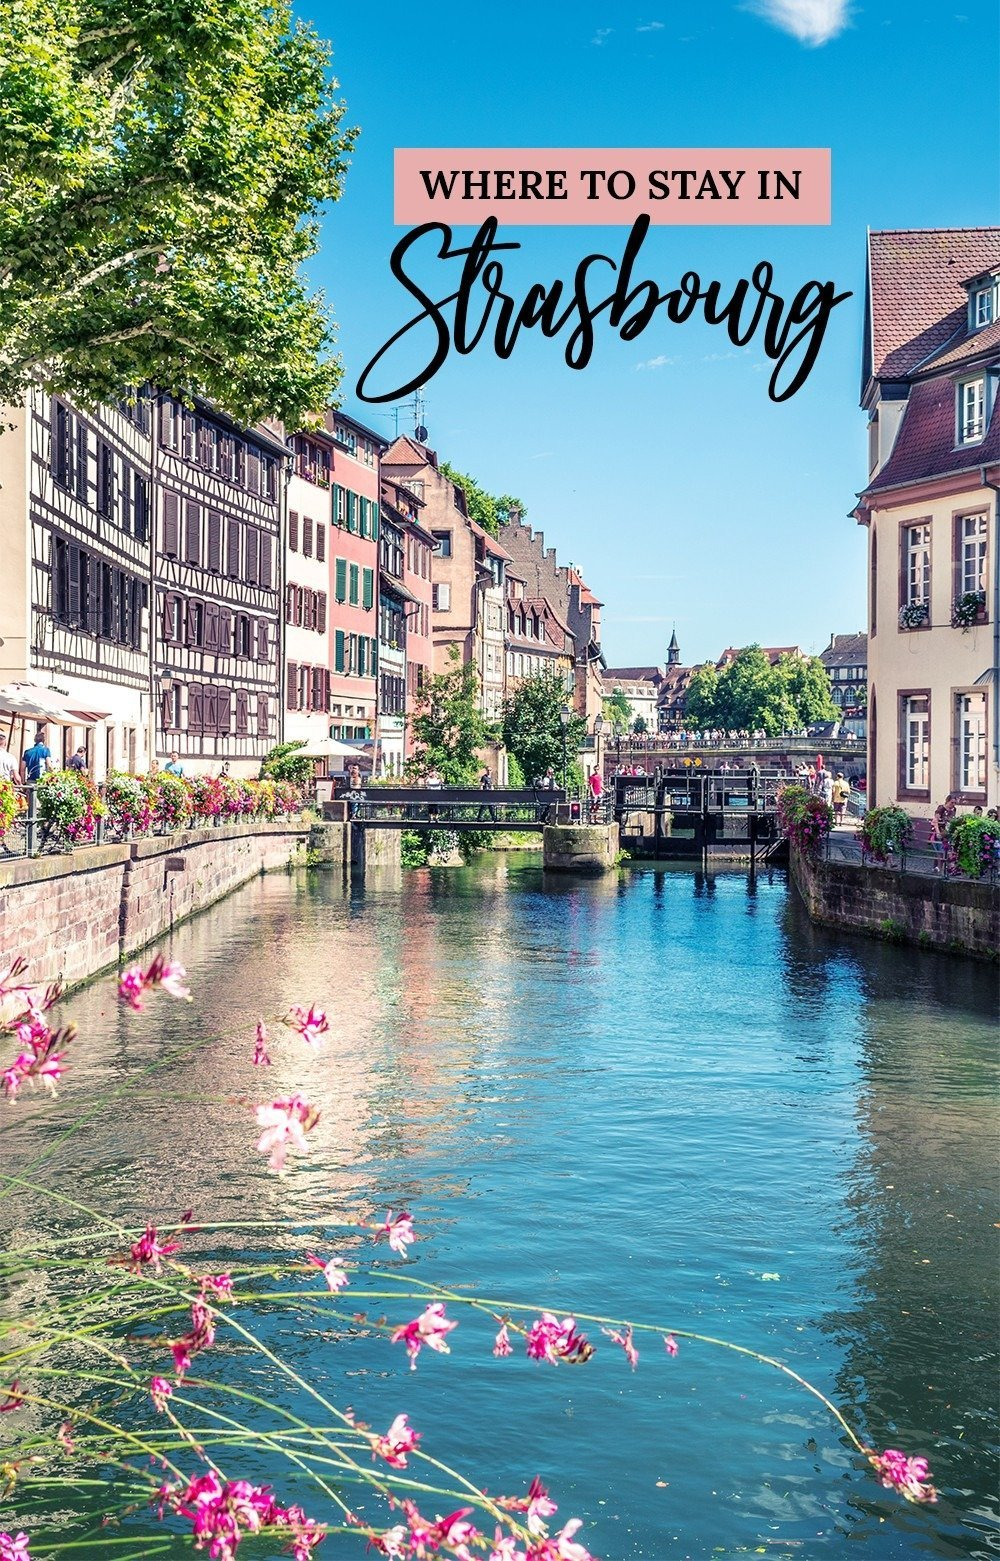 Wine, history, and delicious food – if you love all three, you'll be beyond bliss in Strasbourg, a French border city with a unique French-German culture, excellent gastronomy, and Alsatian wine. Make the most of your holiday – here's where to stay in Strasbourg.